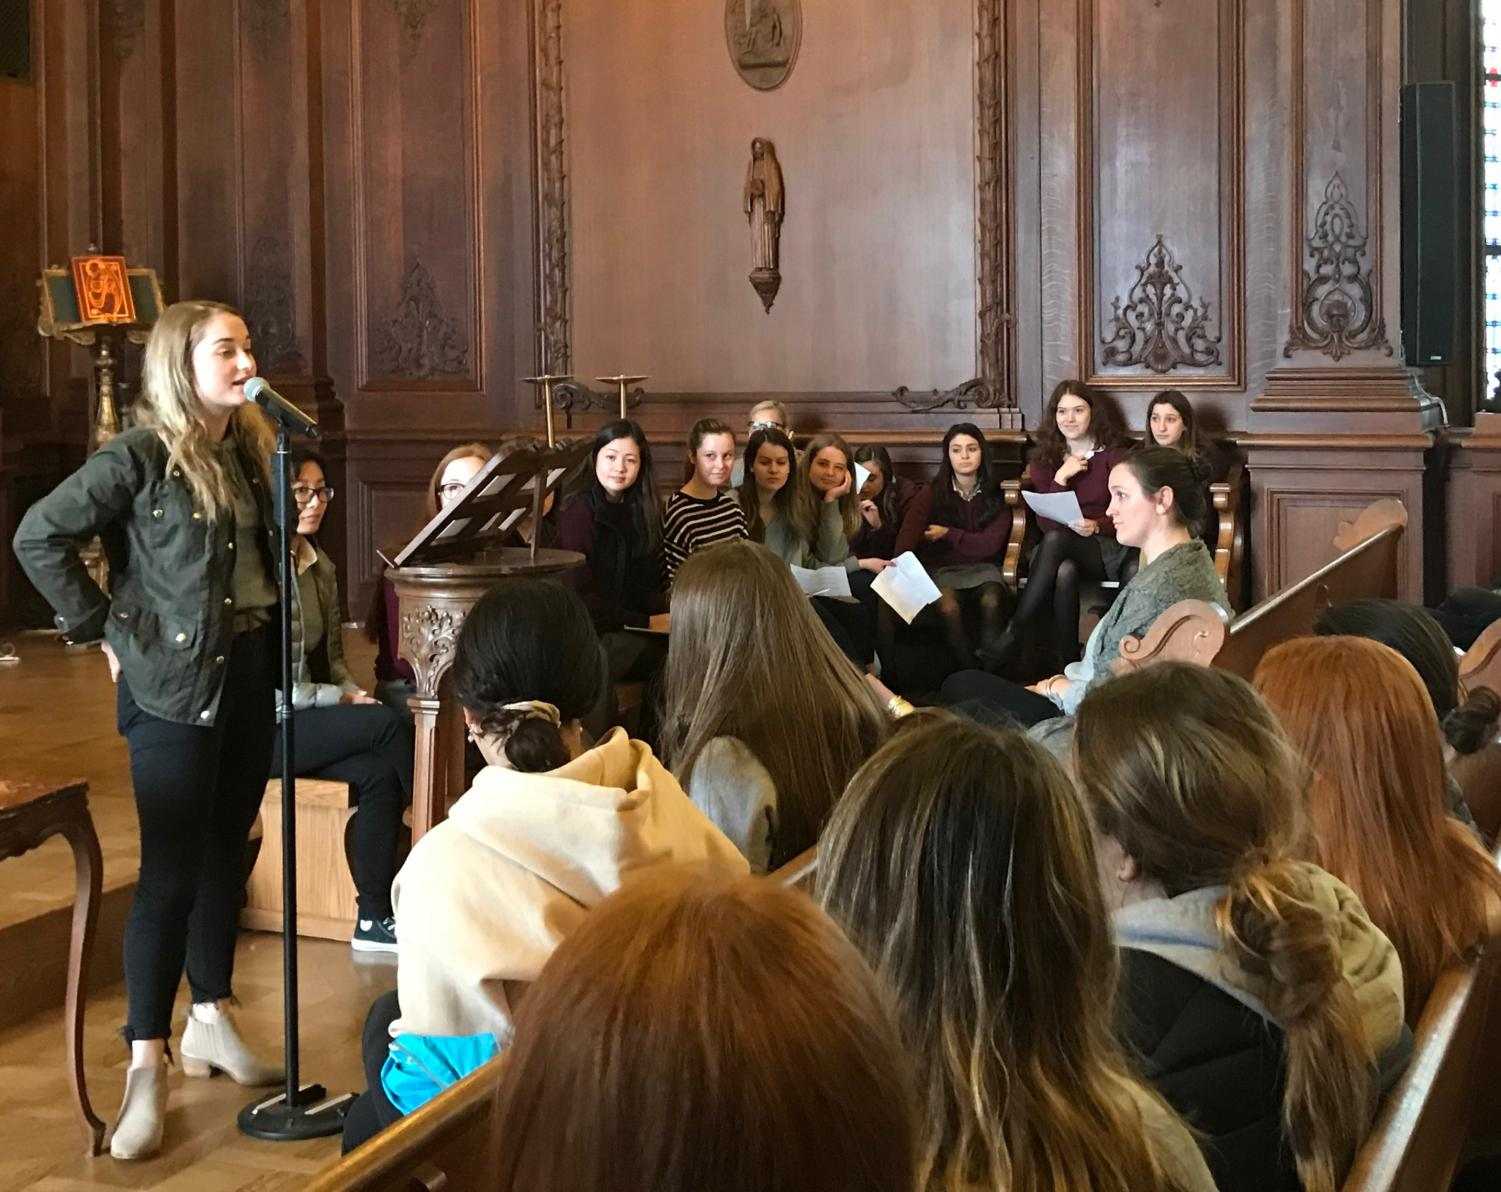 Junior Caroline Schulberg gives her speech to the students and teachers in the Chapel during elections today. Candidates ran for President, Vice President, Financial Officer and Operations Officer.